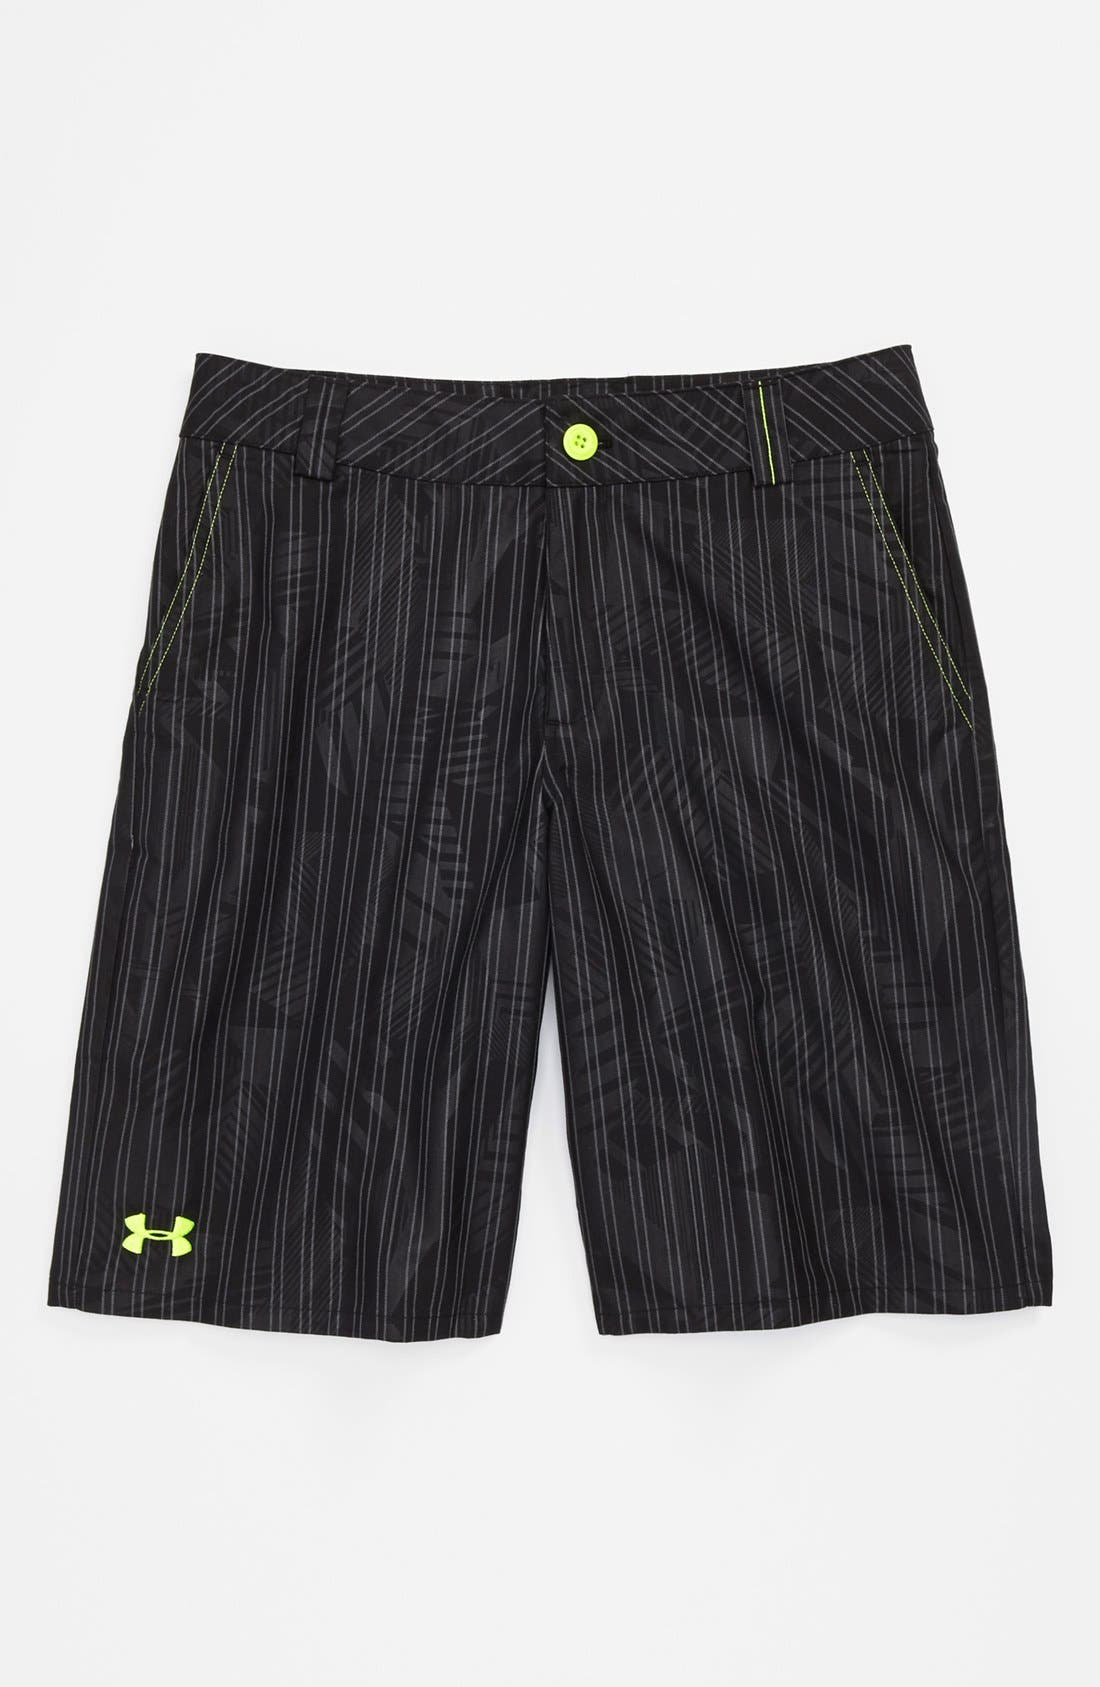 Main Image - Under Armour 'Forged' Shorts (Big Boys)